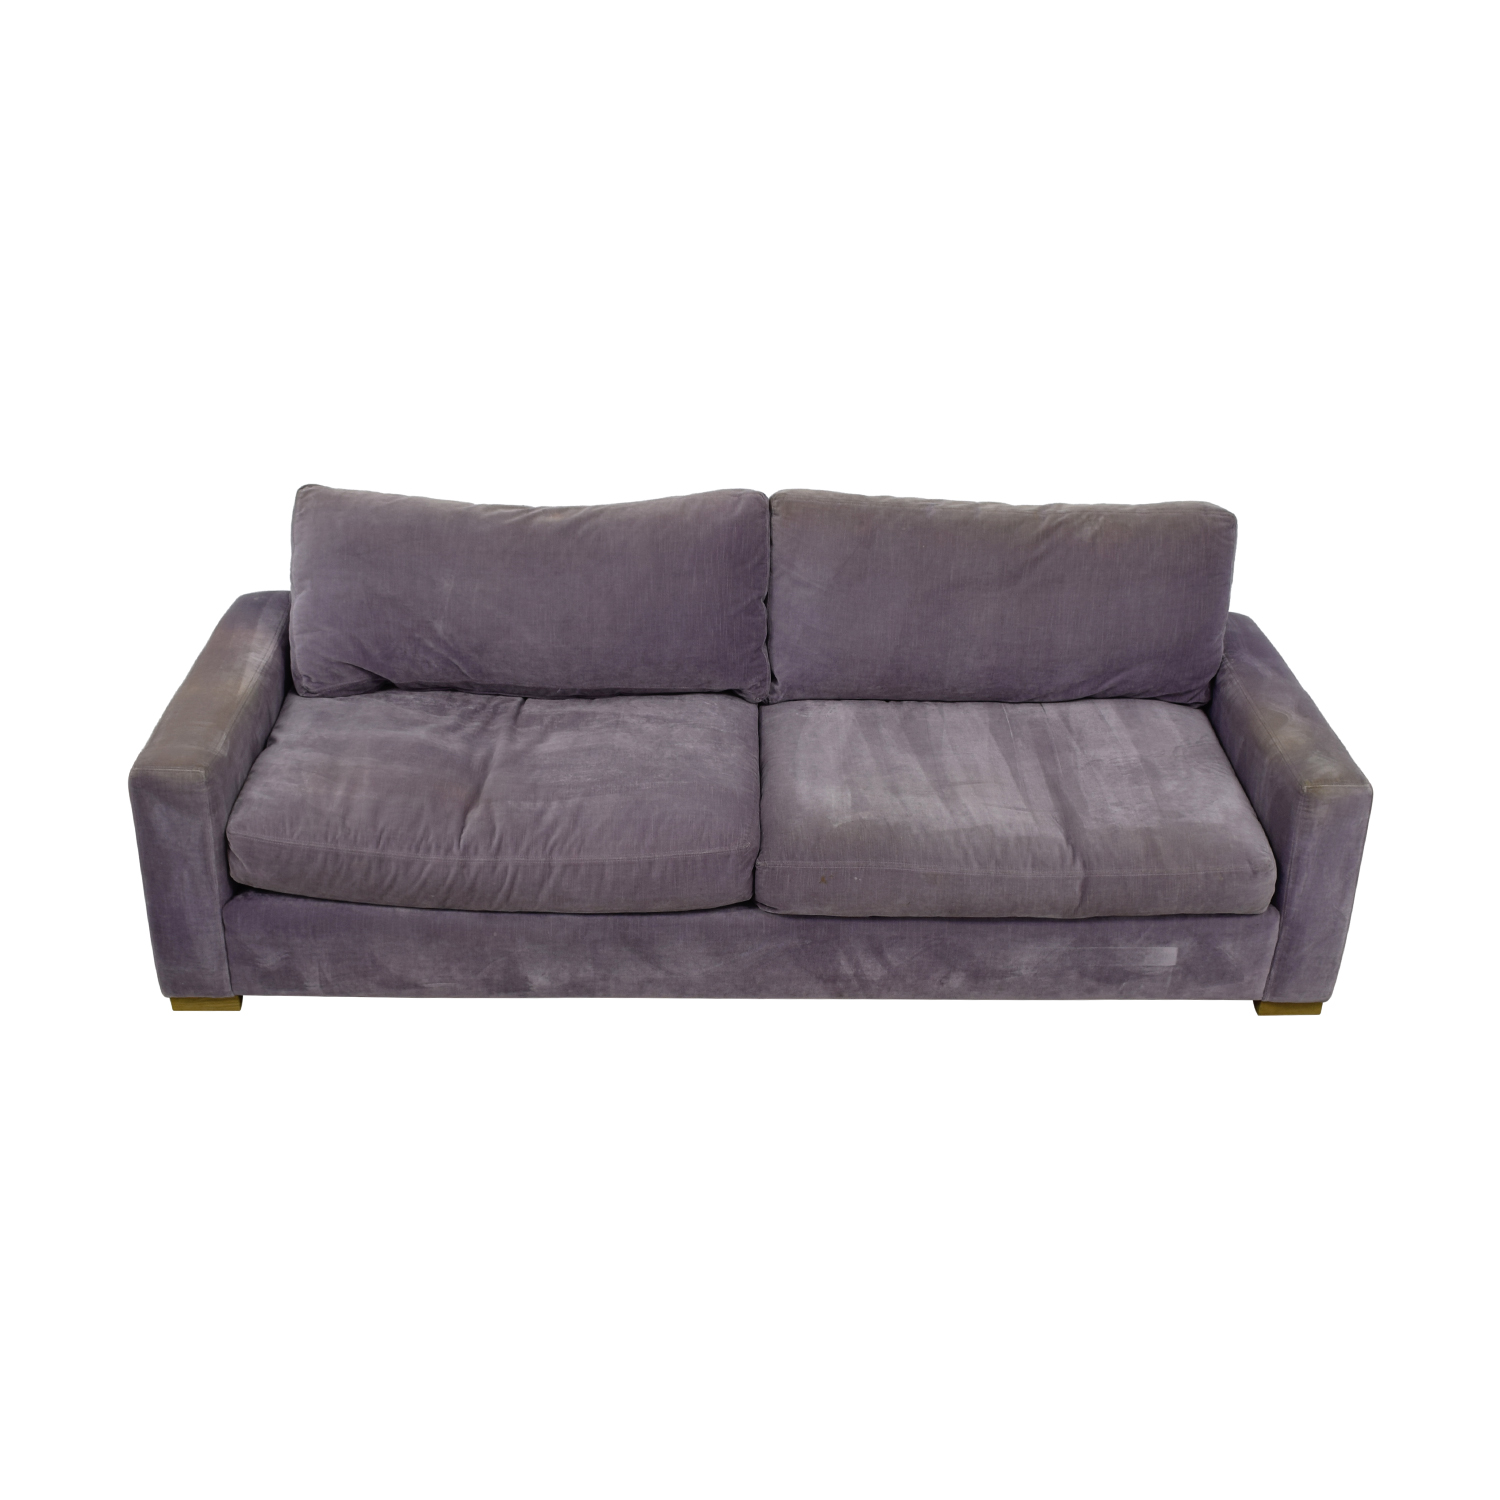 Restoration Hardware Restoration Hardware Maxwell Purple Down Filled Sofa nyc